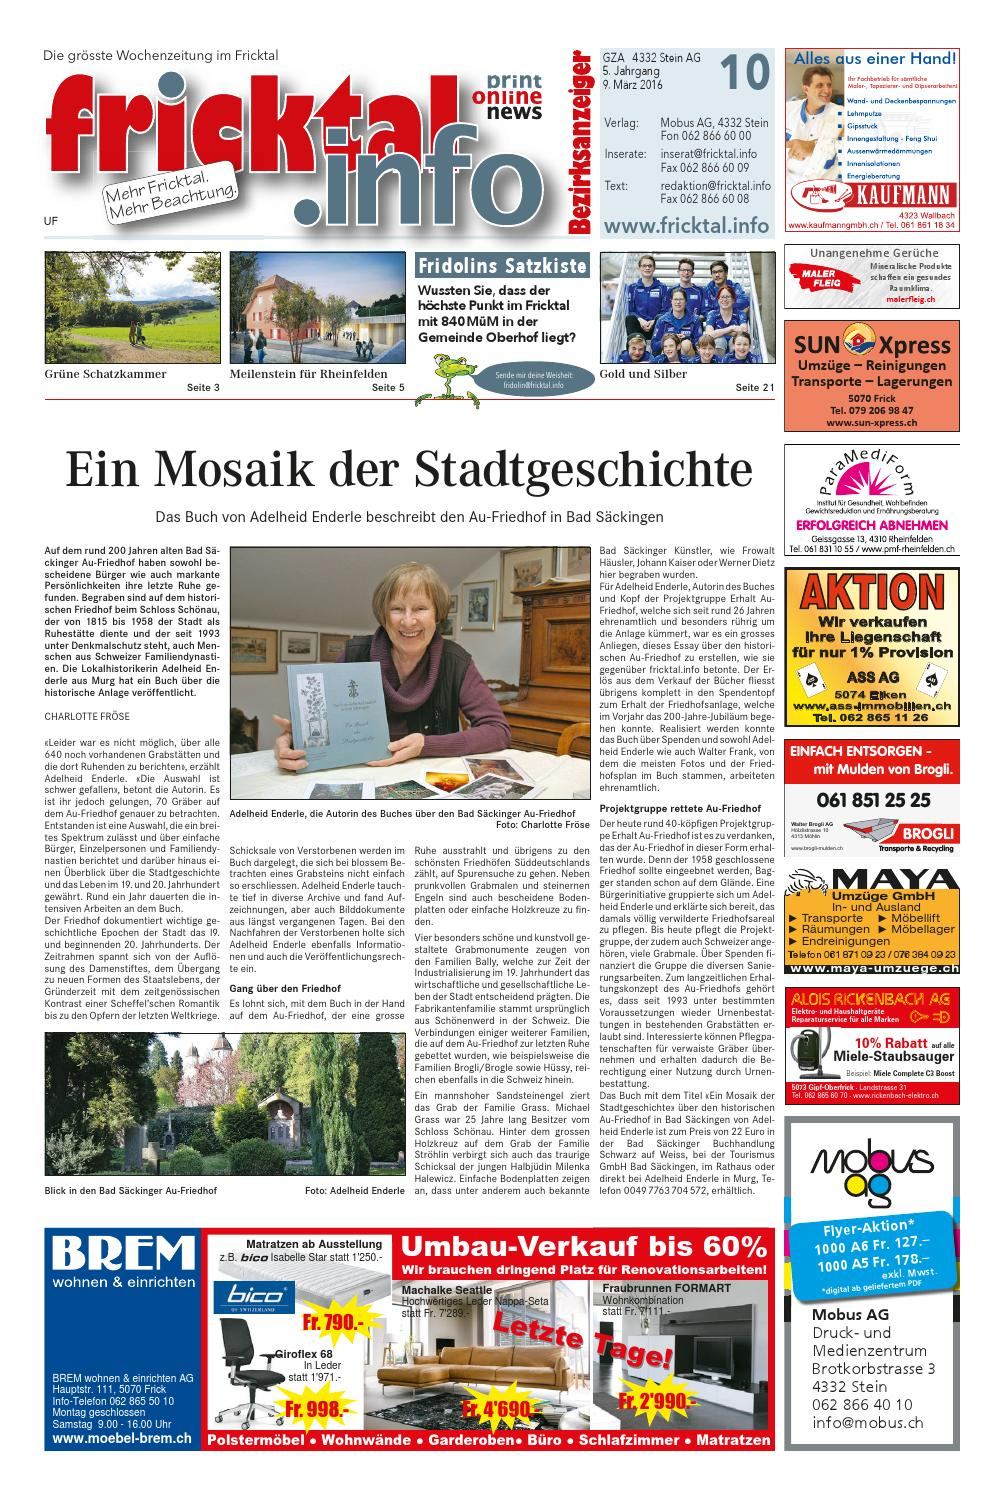 Fricktal Info 2016 10 By Mobus Ag Issuu